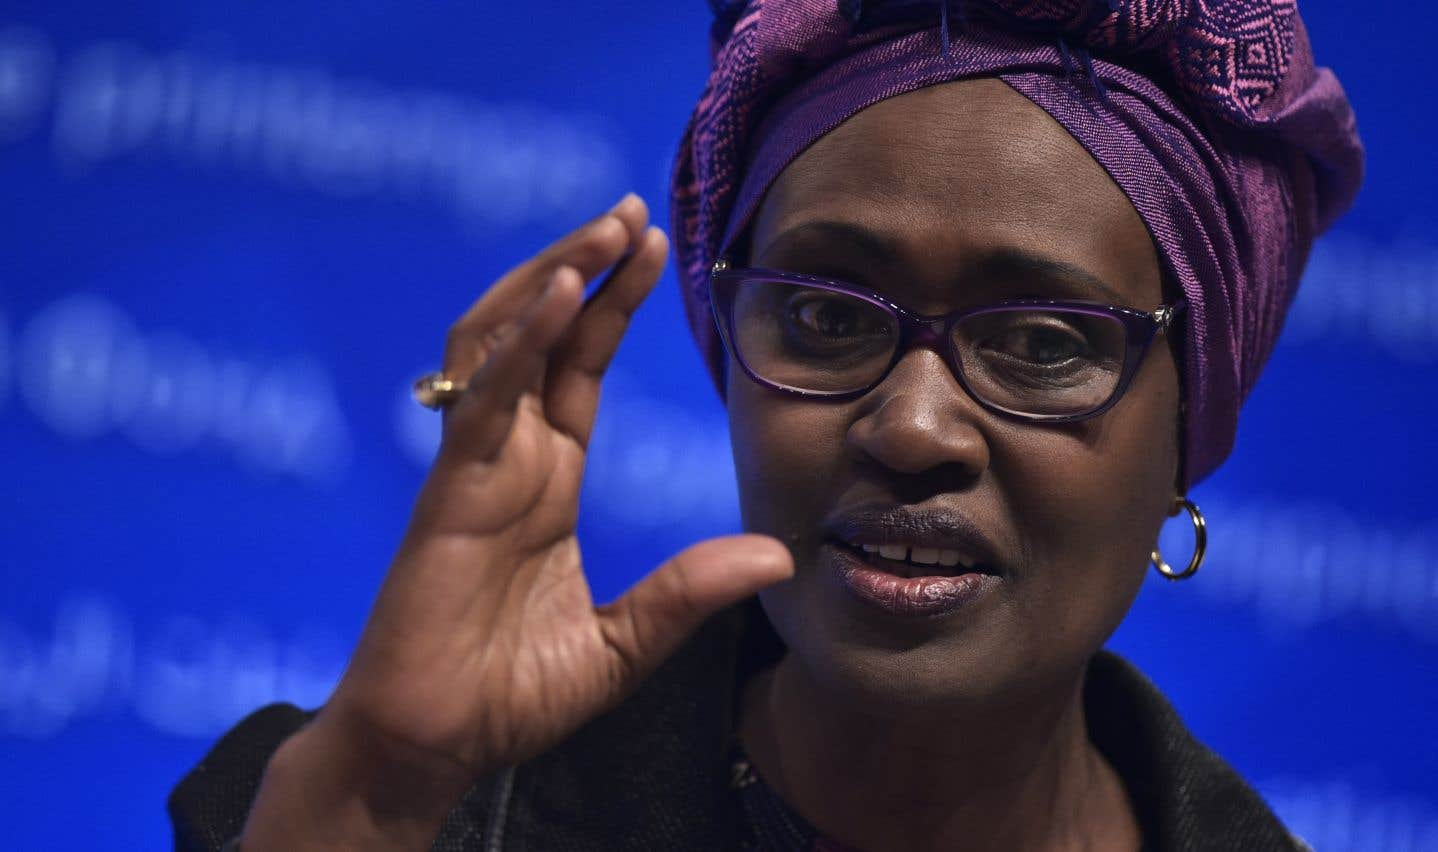 La directrice exécutive d'Oxfam international, Winnie Byanyima